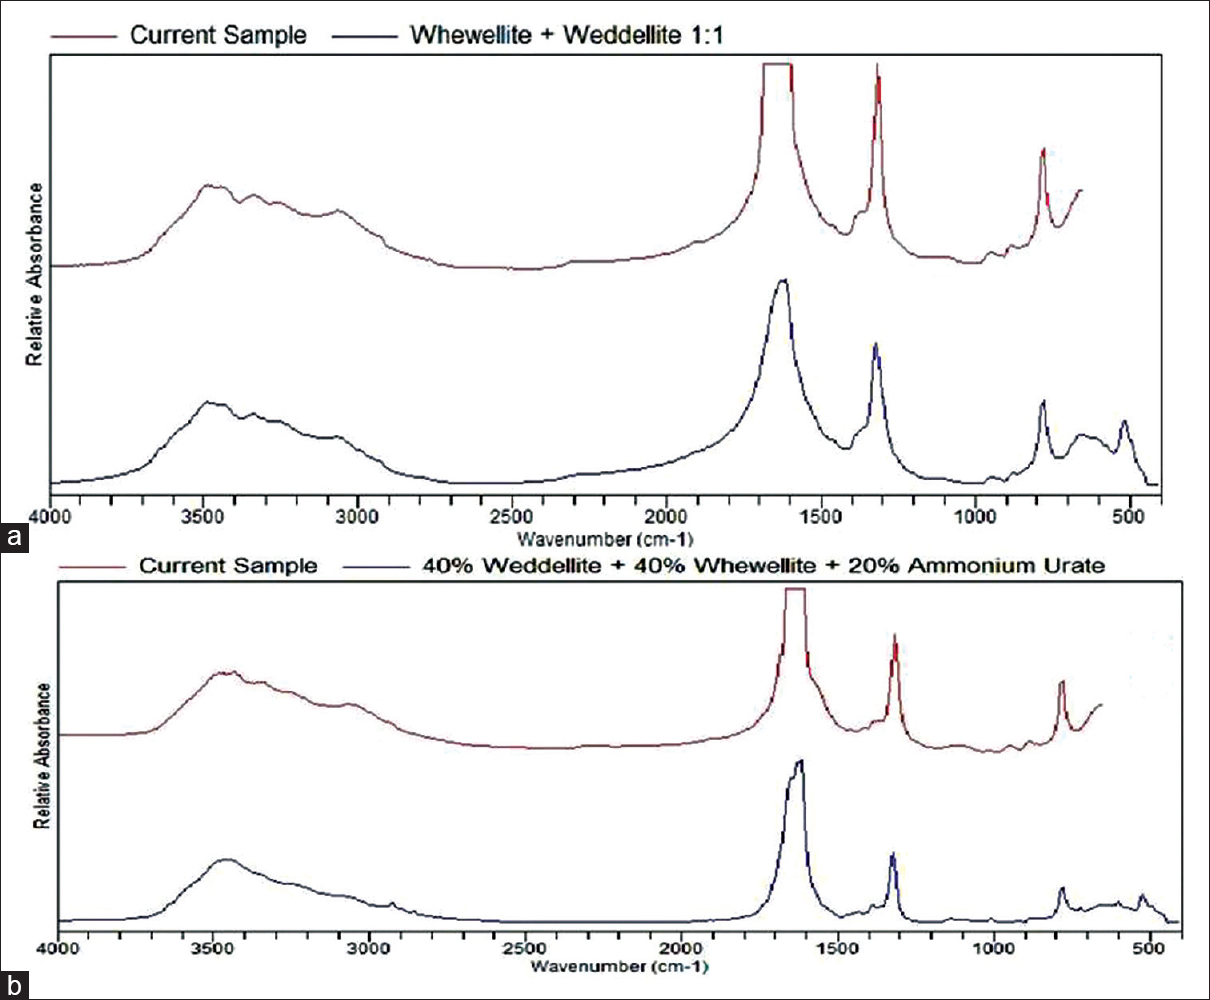 Figure 1: (a) Fourier transform infrared spectrum profile of a mixed calcium oxalate stone showing major peaks. (b) Fourier transform infrared spectrum profile of a mixed calcium oxalate with uric acid stone showing major peaks